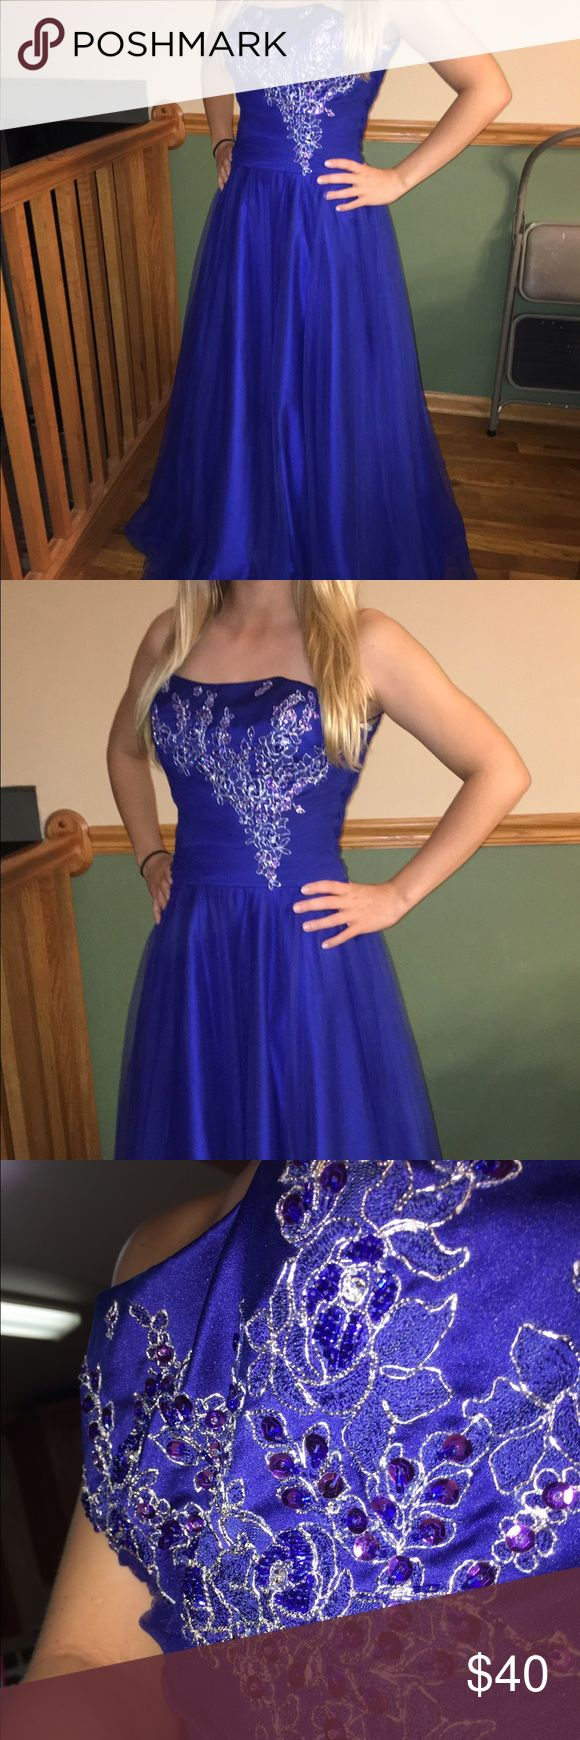 Royal Blue Beaded Gown Royal Blue Gown with beaded detailing on the bodice, light tulle material. Fits sizes 2-4. Perfect condition Dresses Prom